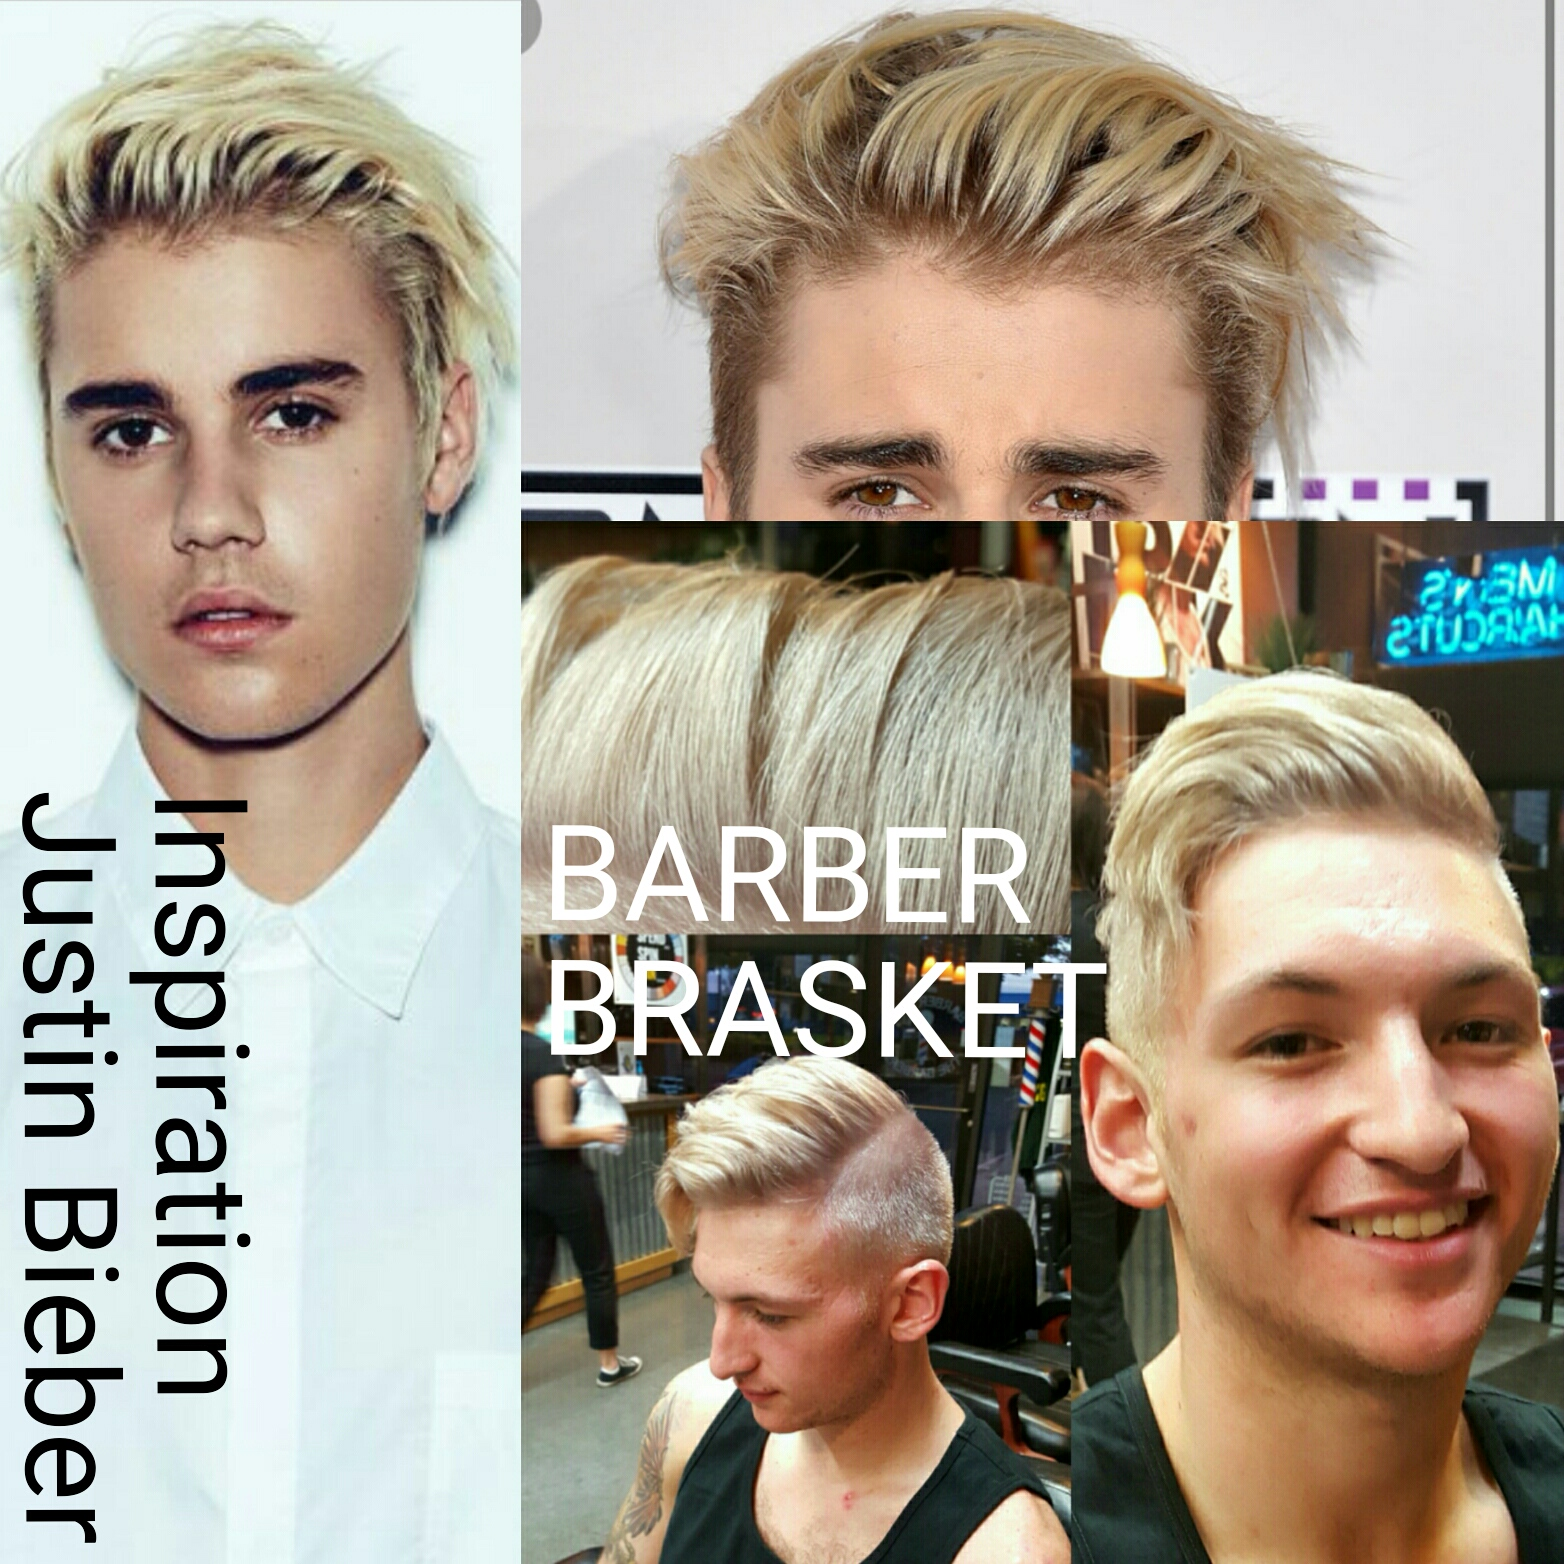 A Modern Haircut Inspired by the '90s and The Biebs